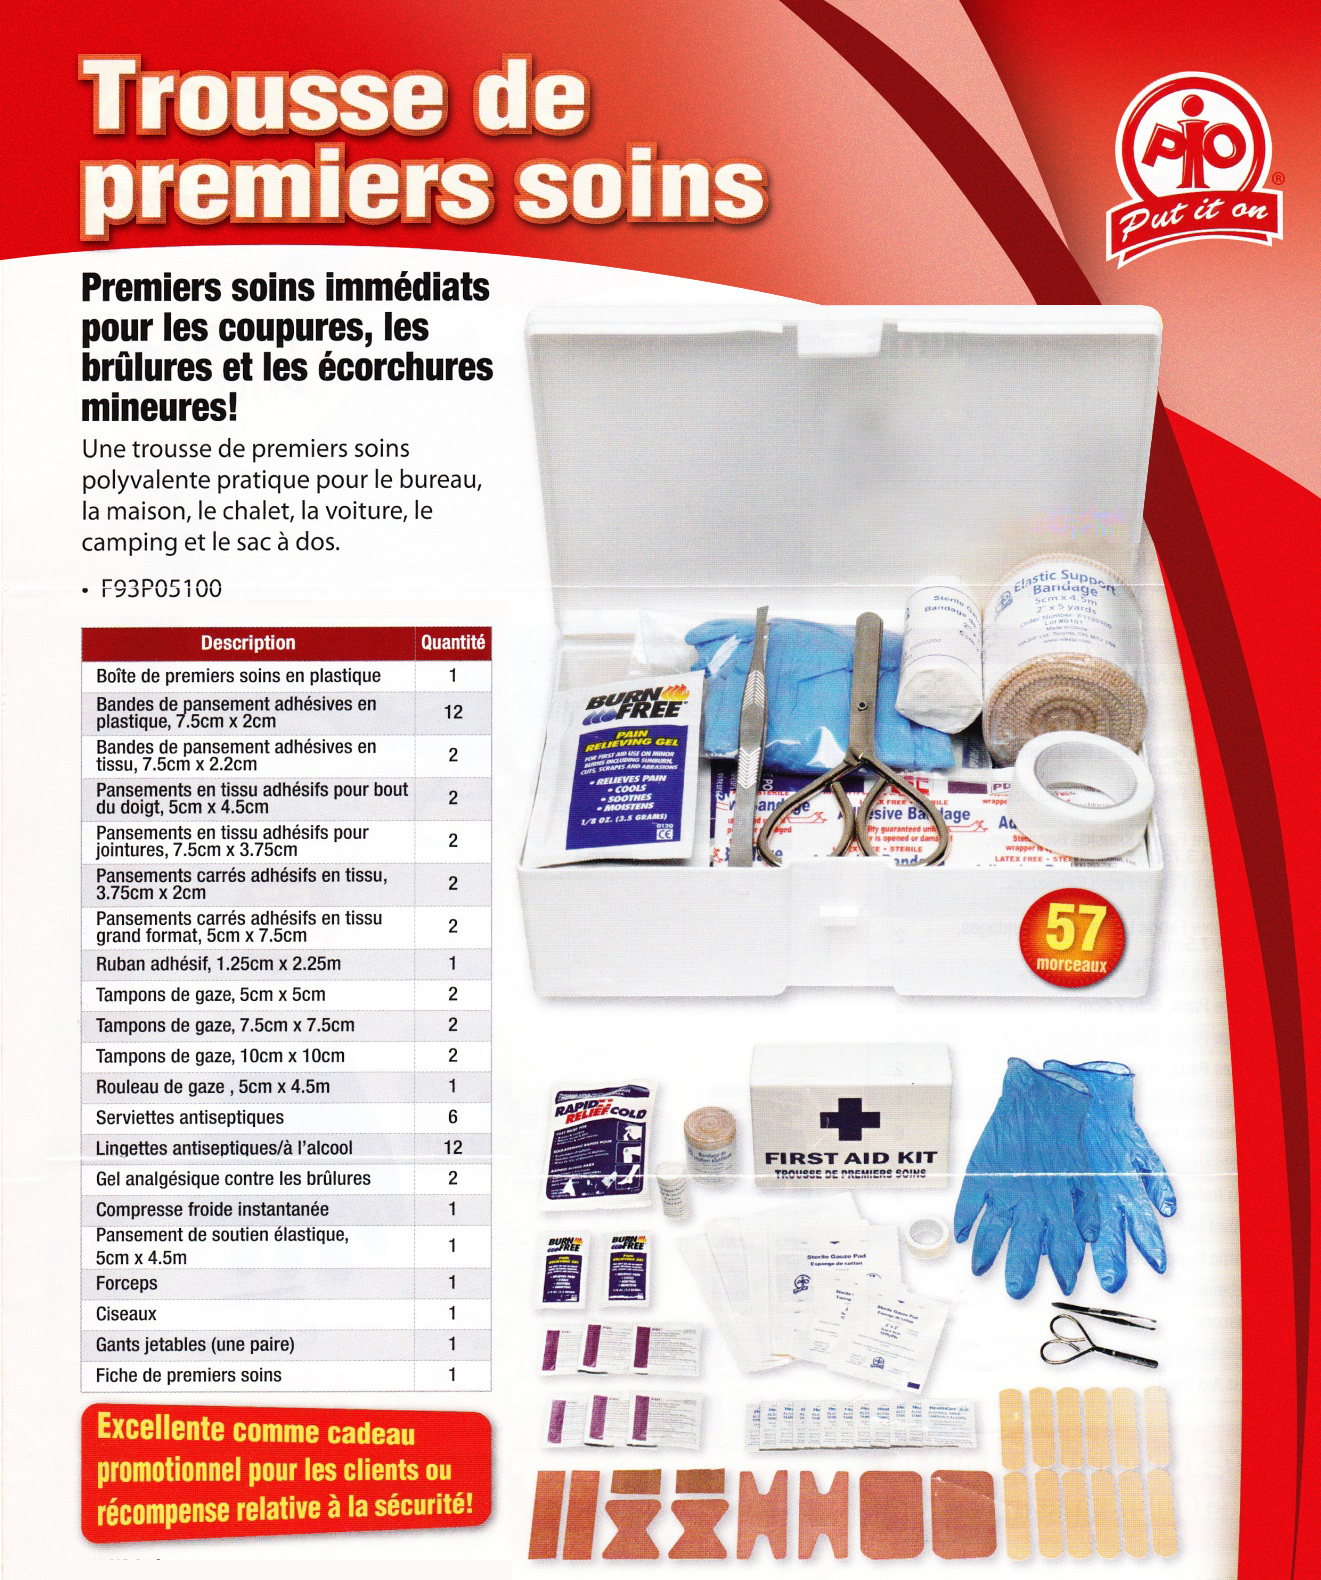 medic-quebec-trousse en promotion